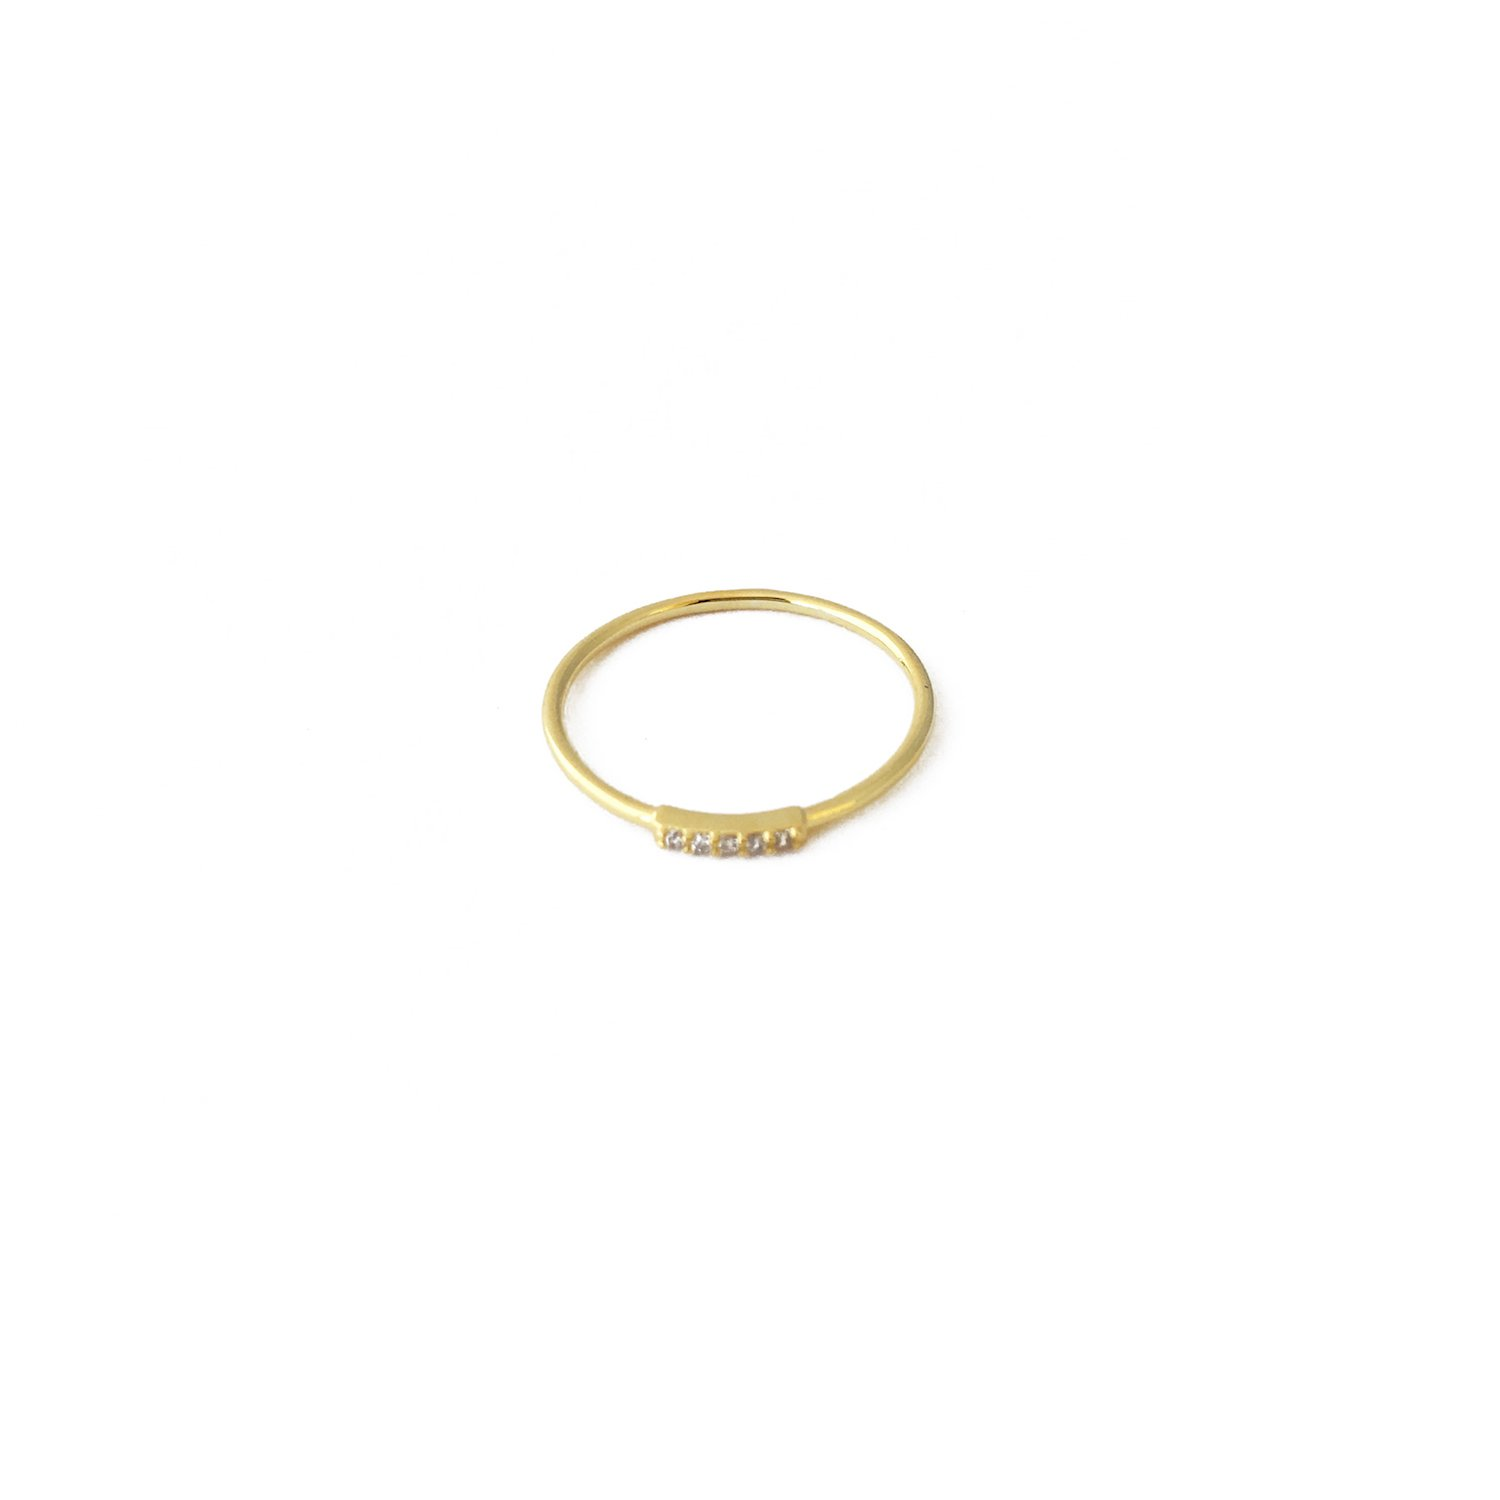 HONEYCAT Mini Crystal Row Ring in 24k Gold Plate | Minimalist, Delicate Jewelry (Gold 7)